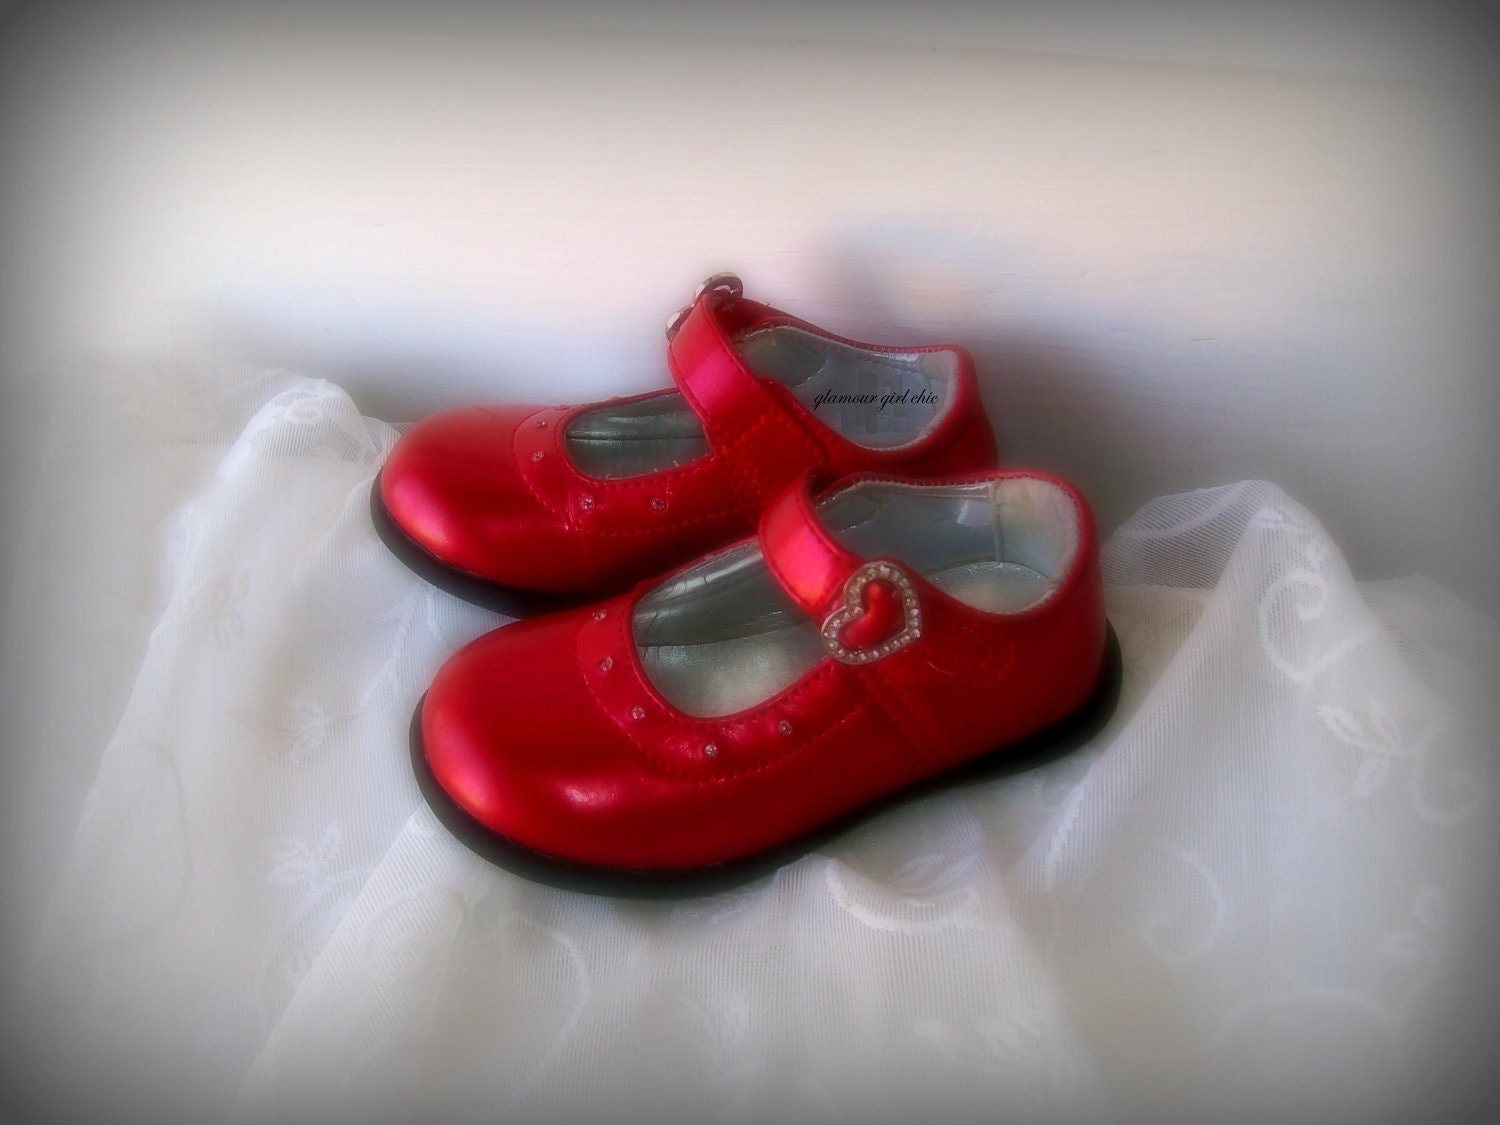 Future Cinderella.Girls Red shoes. MAry Jane shoes.Girly Fairy tale. Nursery Wall Art.Girls room. 5x7 Photography